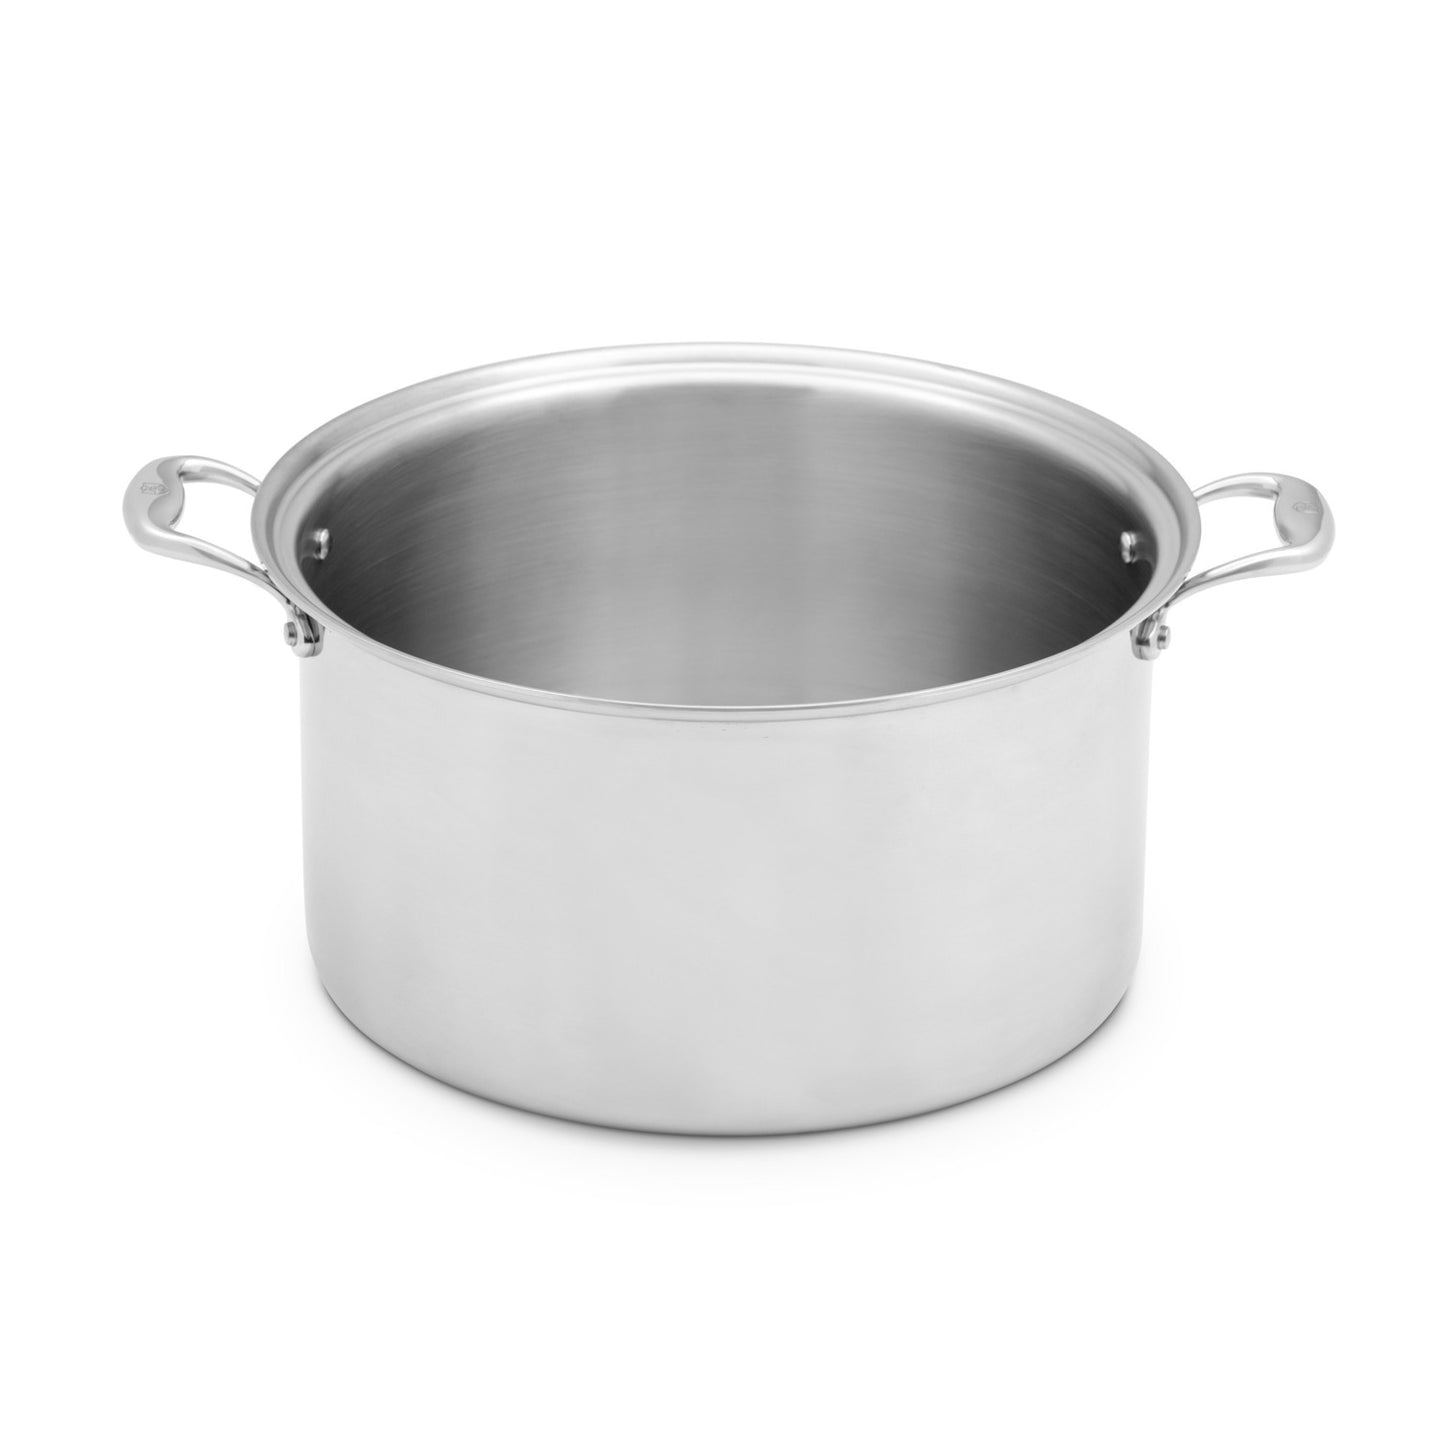 16 Quart Stock Pot